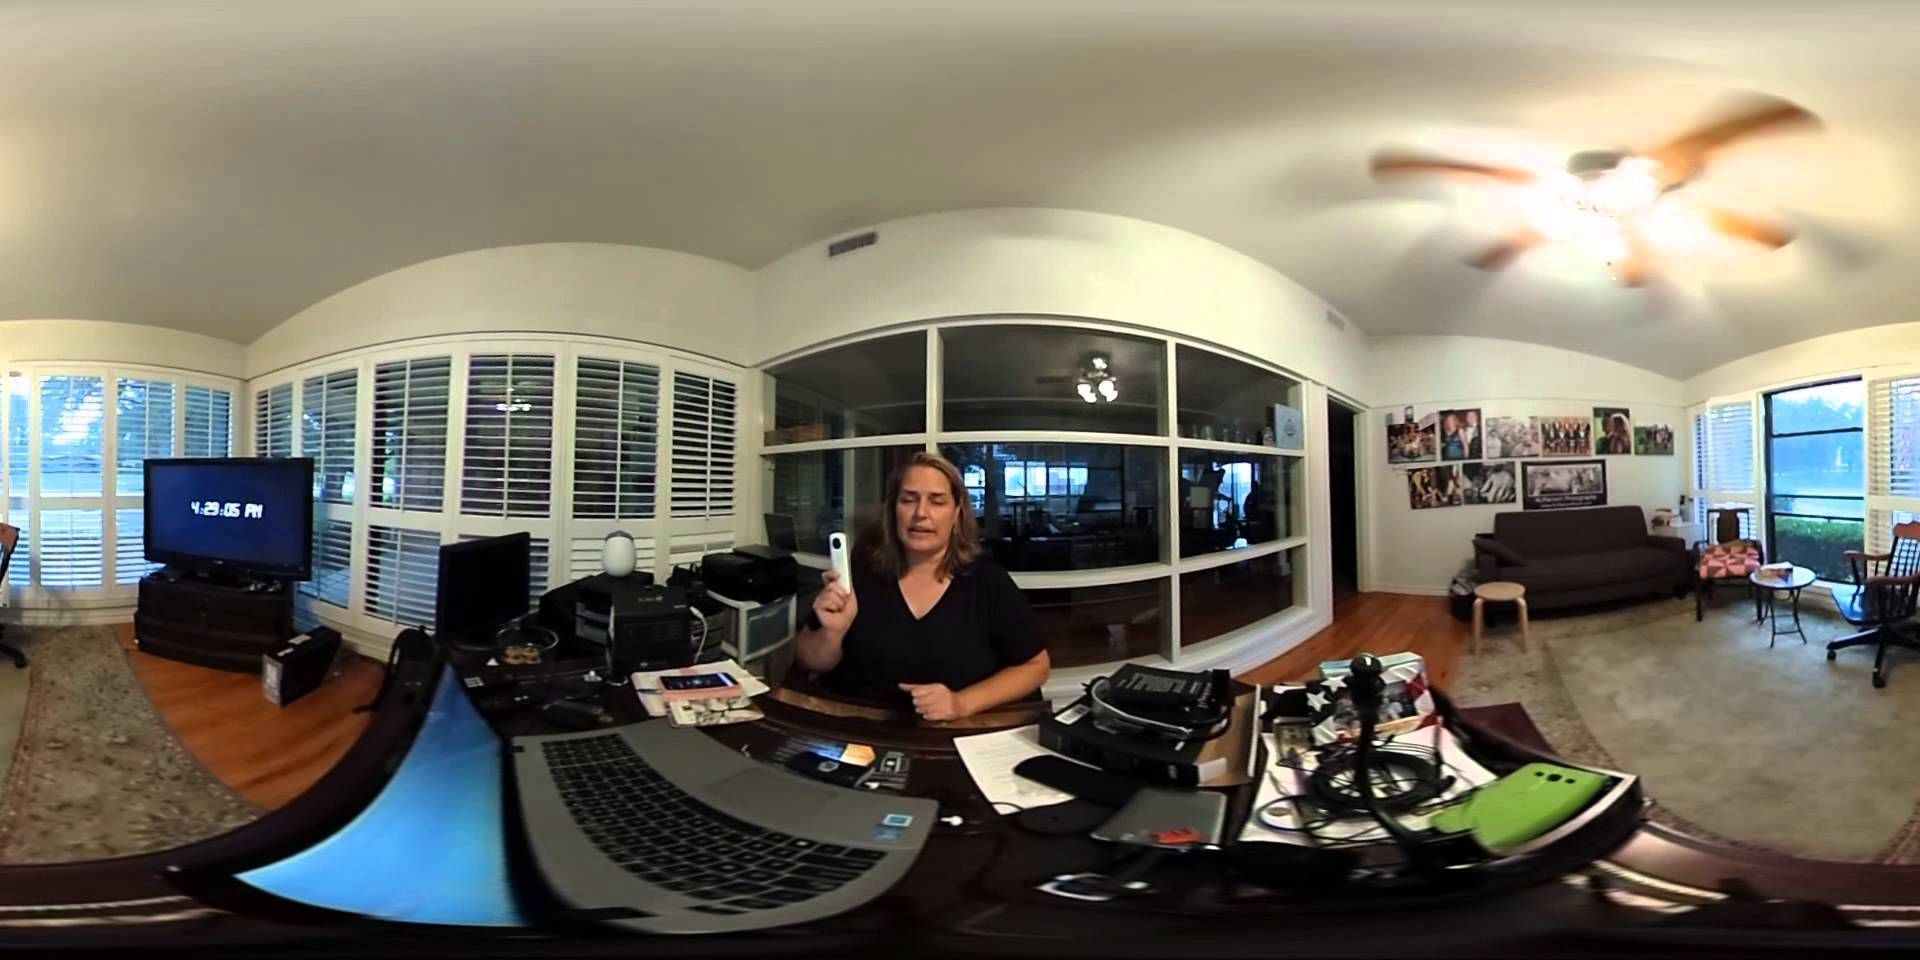 Inside my Office: my first Theta 360 S video. Best viewed via Google Chrome browser, or YouTube app on smartphone.